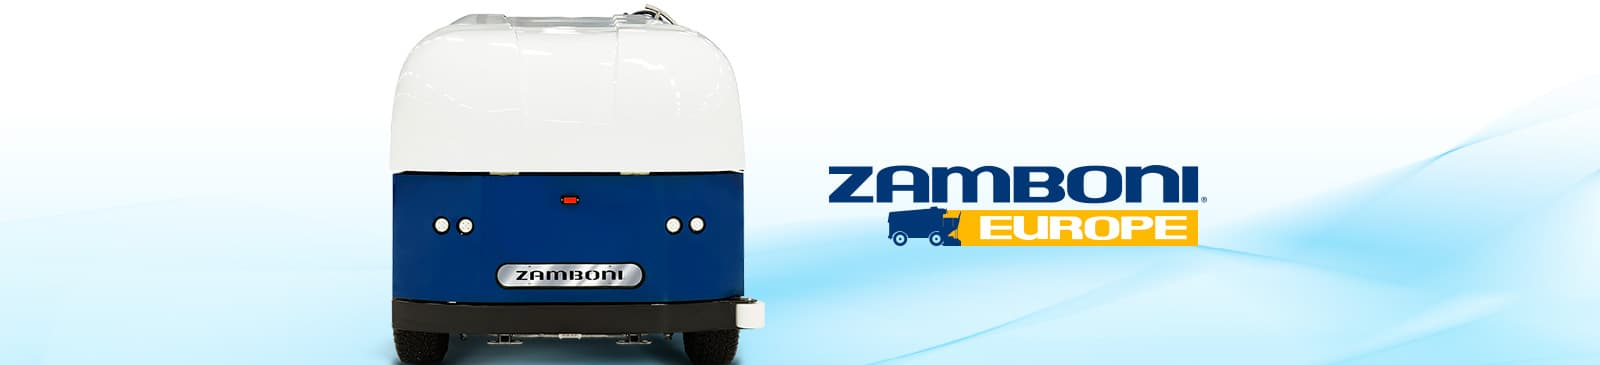 Introducing Zamboni Europe